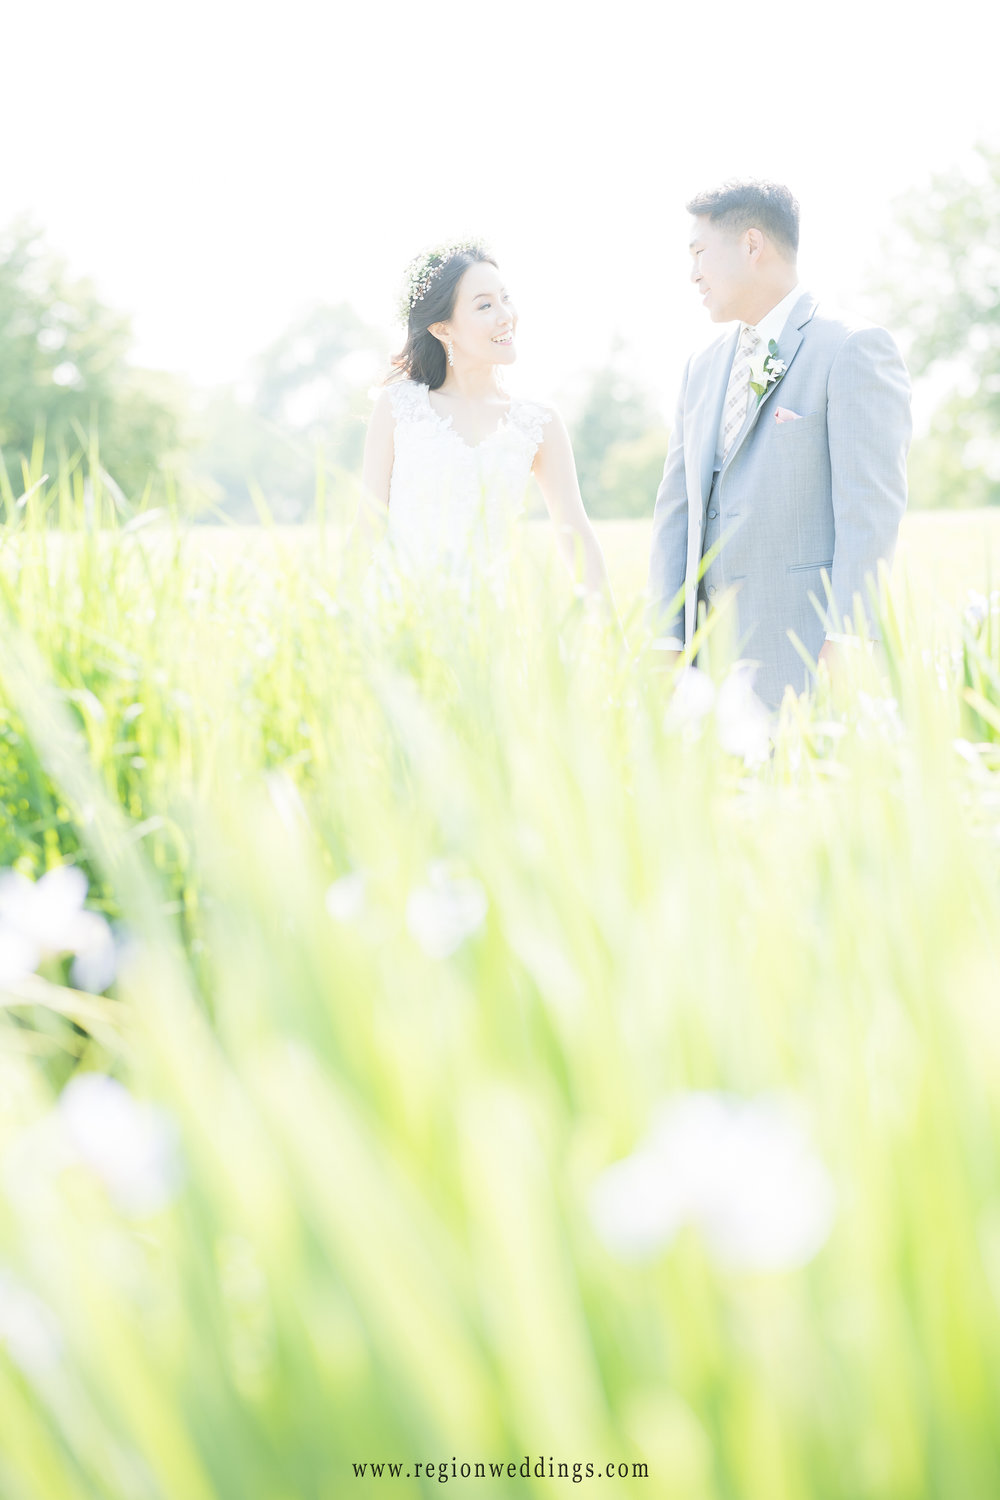 Bride and groom soak up the sun in this backlit wedding picture.